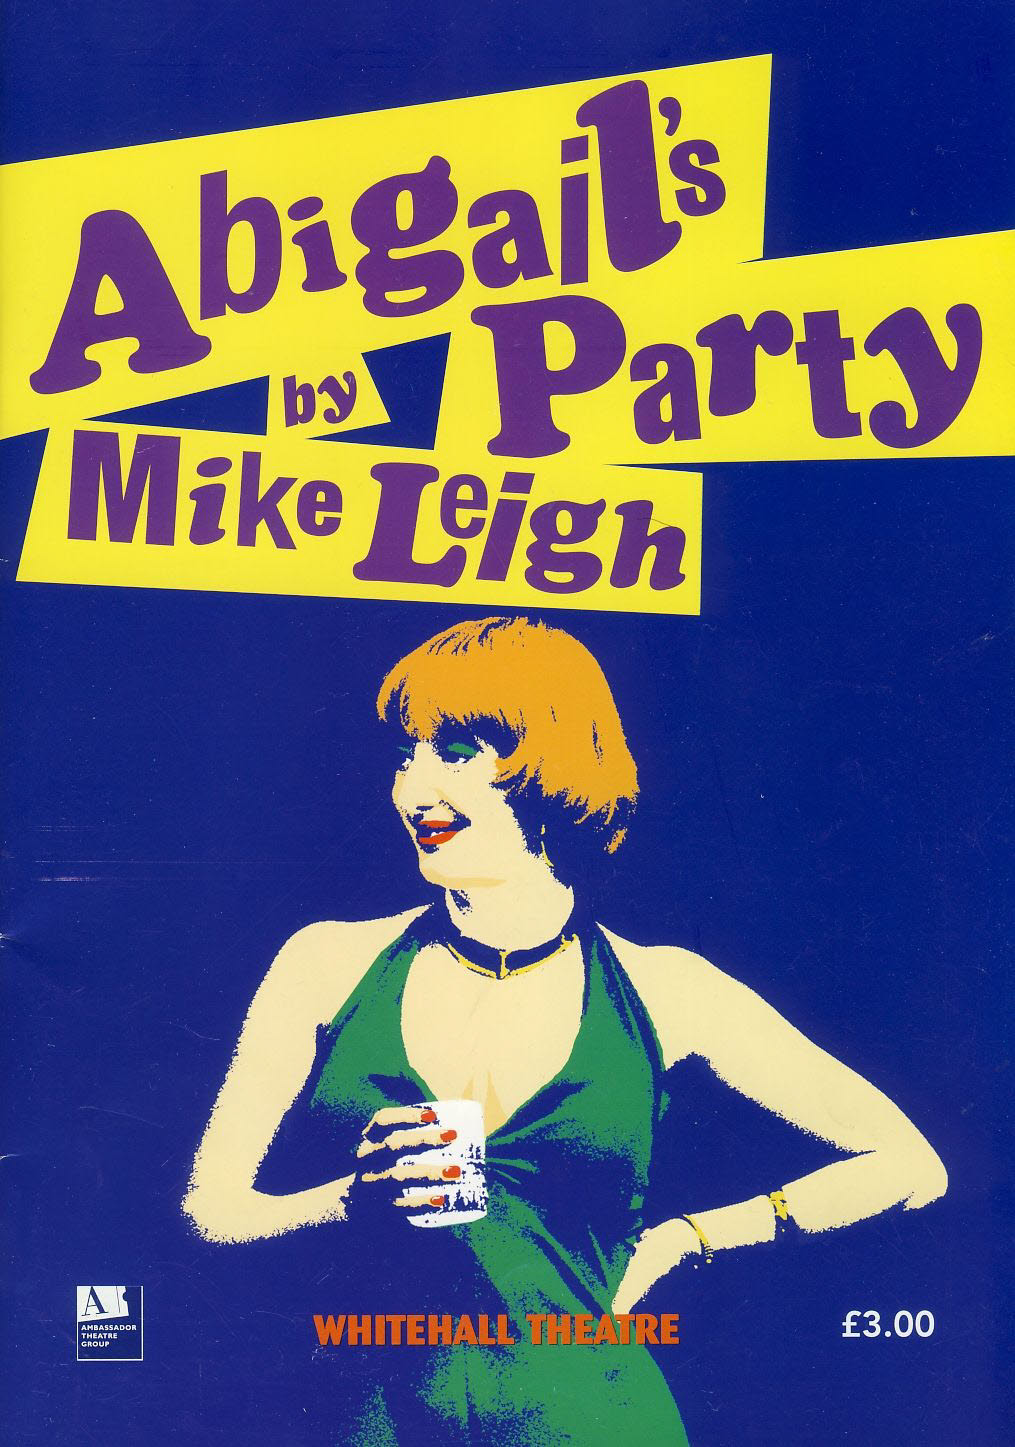 Abigail's Party by Mike Leigh 2003 Whitehall Theatre Programme JAKE WOOD refb1522 Measures approx 17cm x 24cm.